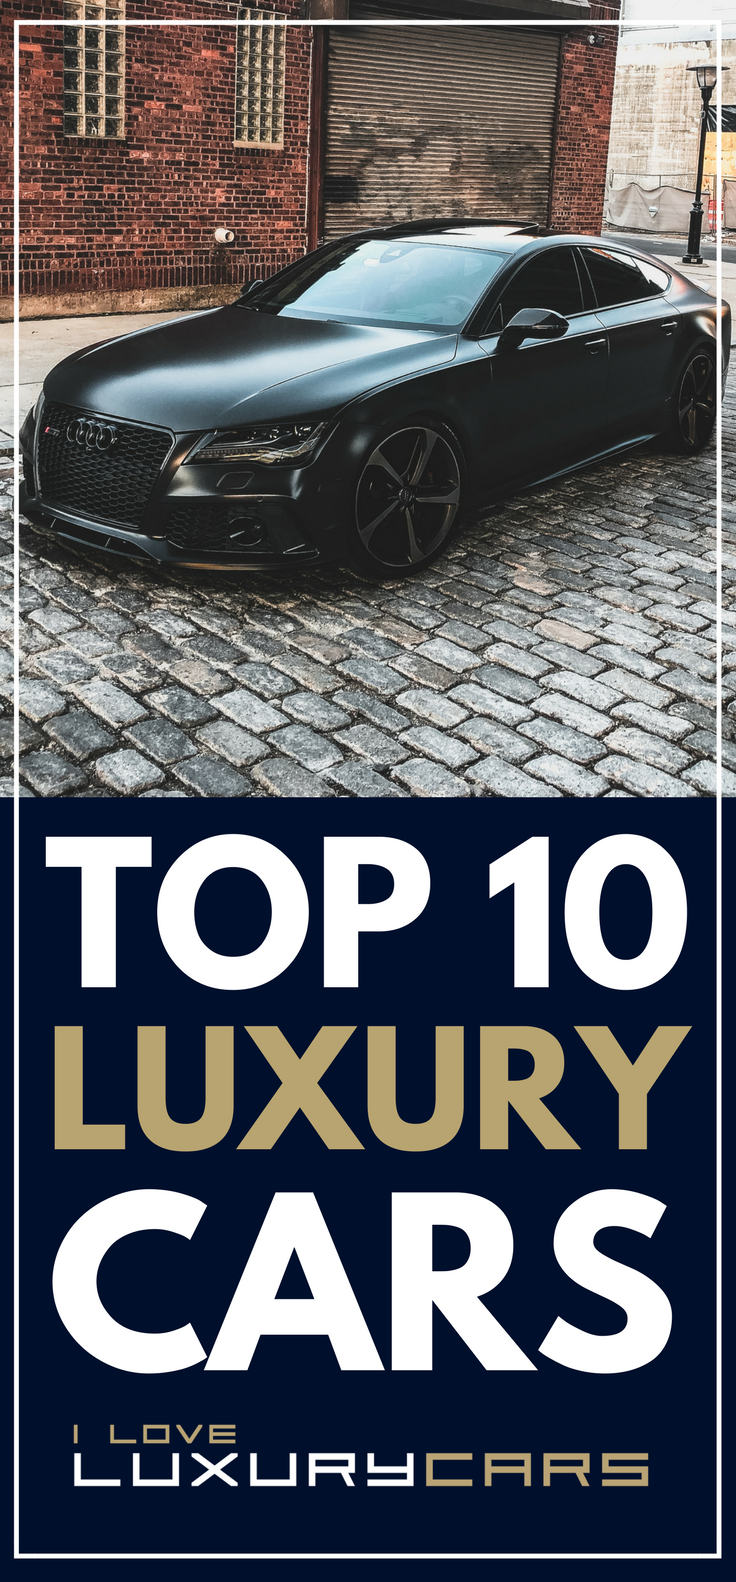 List Of The Top 10 Luxury Cars In The World Top 10 Luxury Cars Top Luxury Cars Car In The World